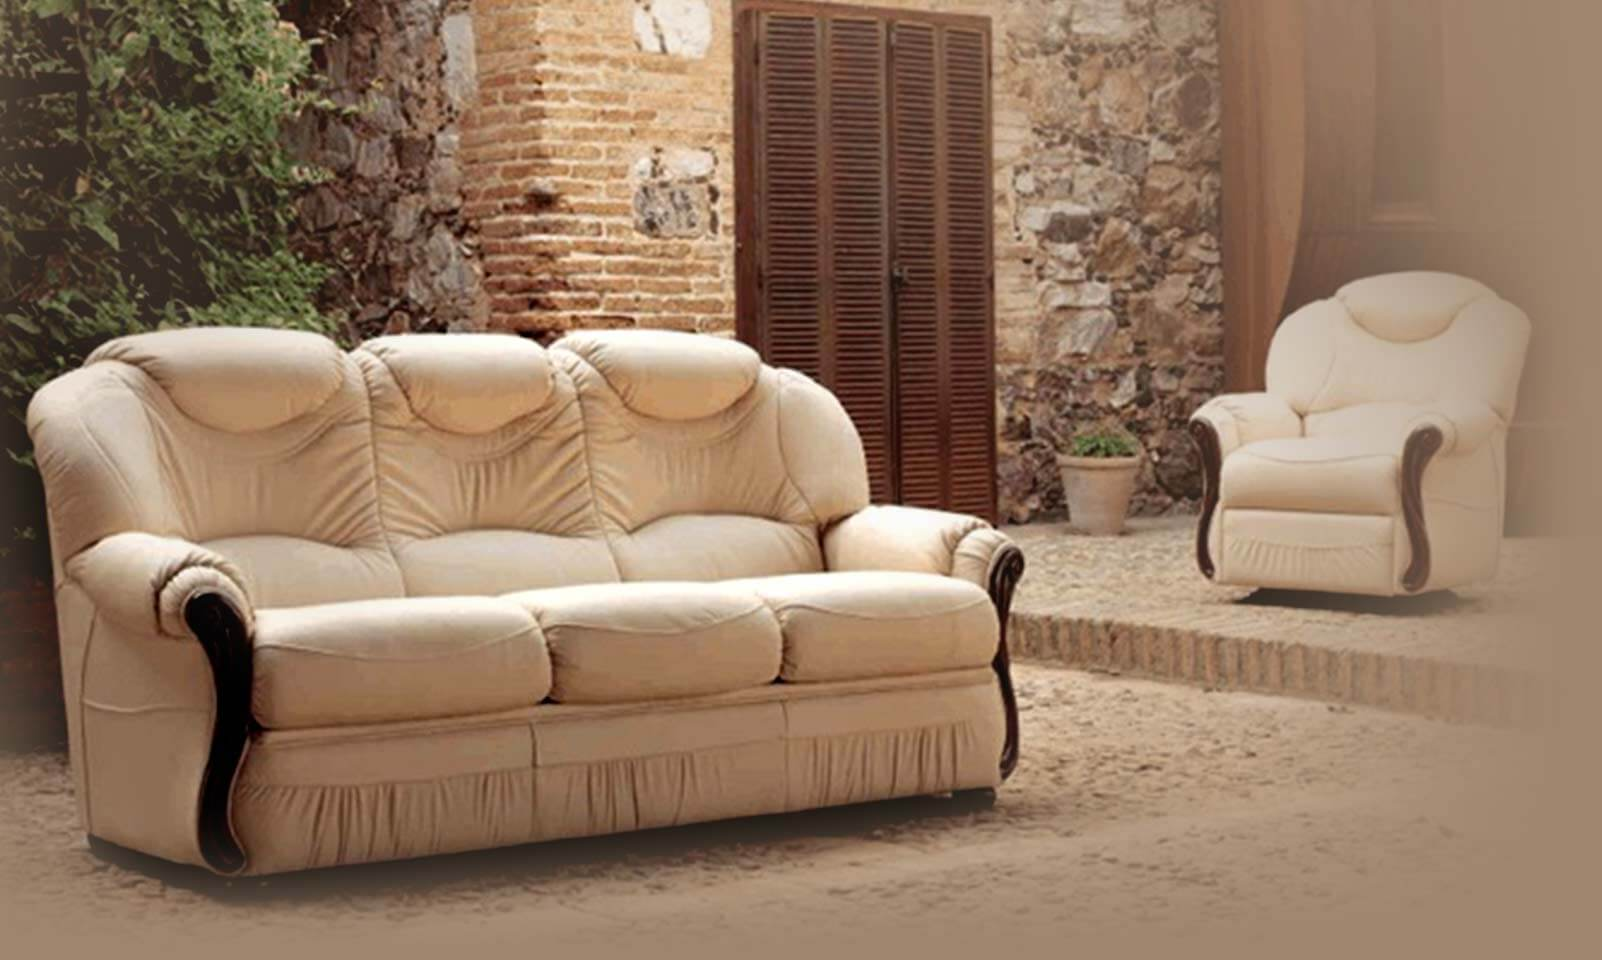 Italian Leather Sofas – Genuine Italian Leather